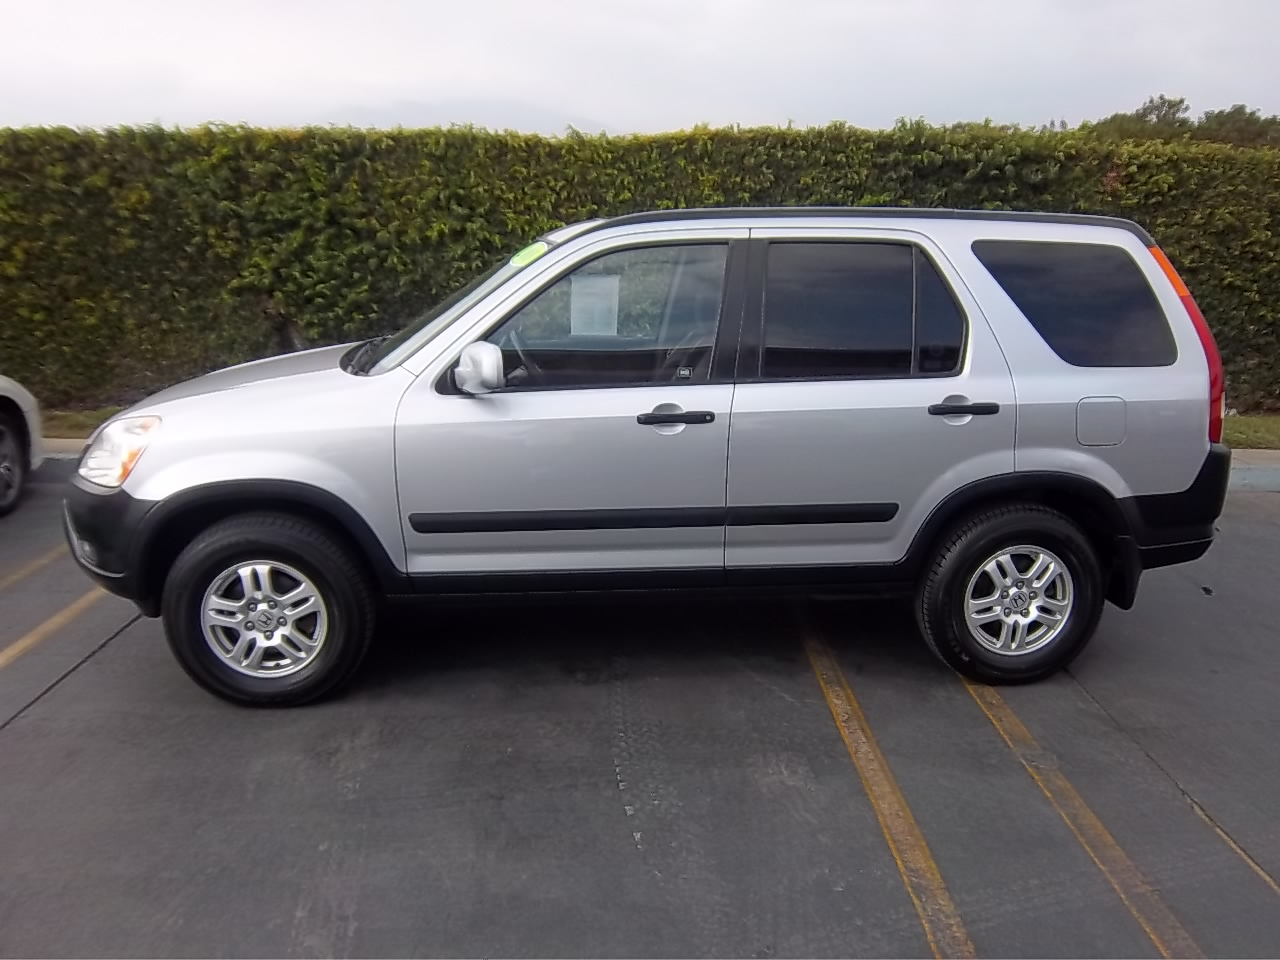 Honda CR-V 2.4 2003 photo - 5